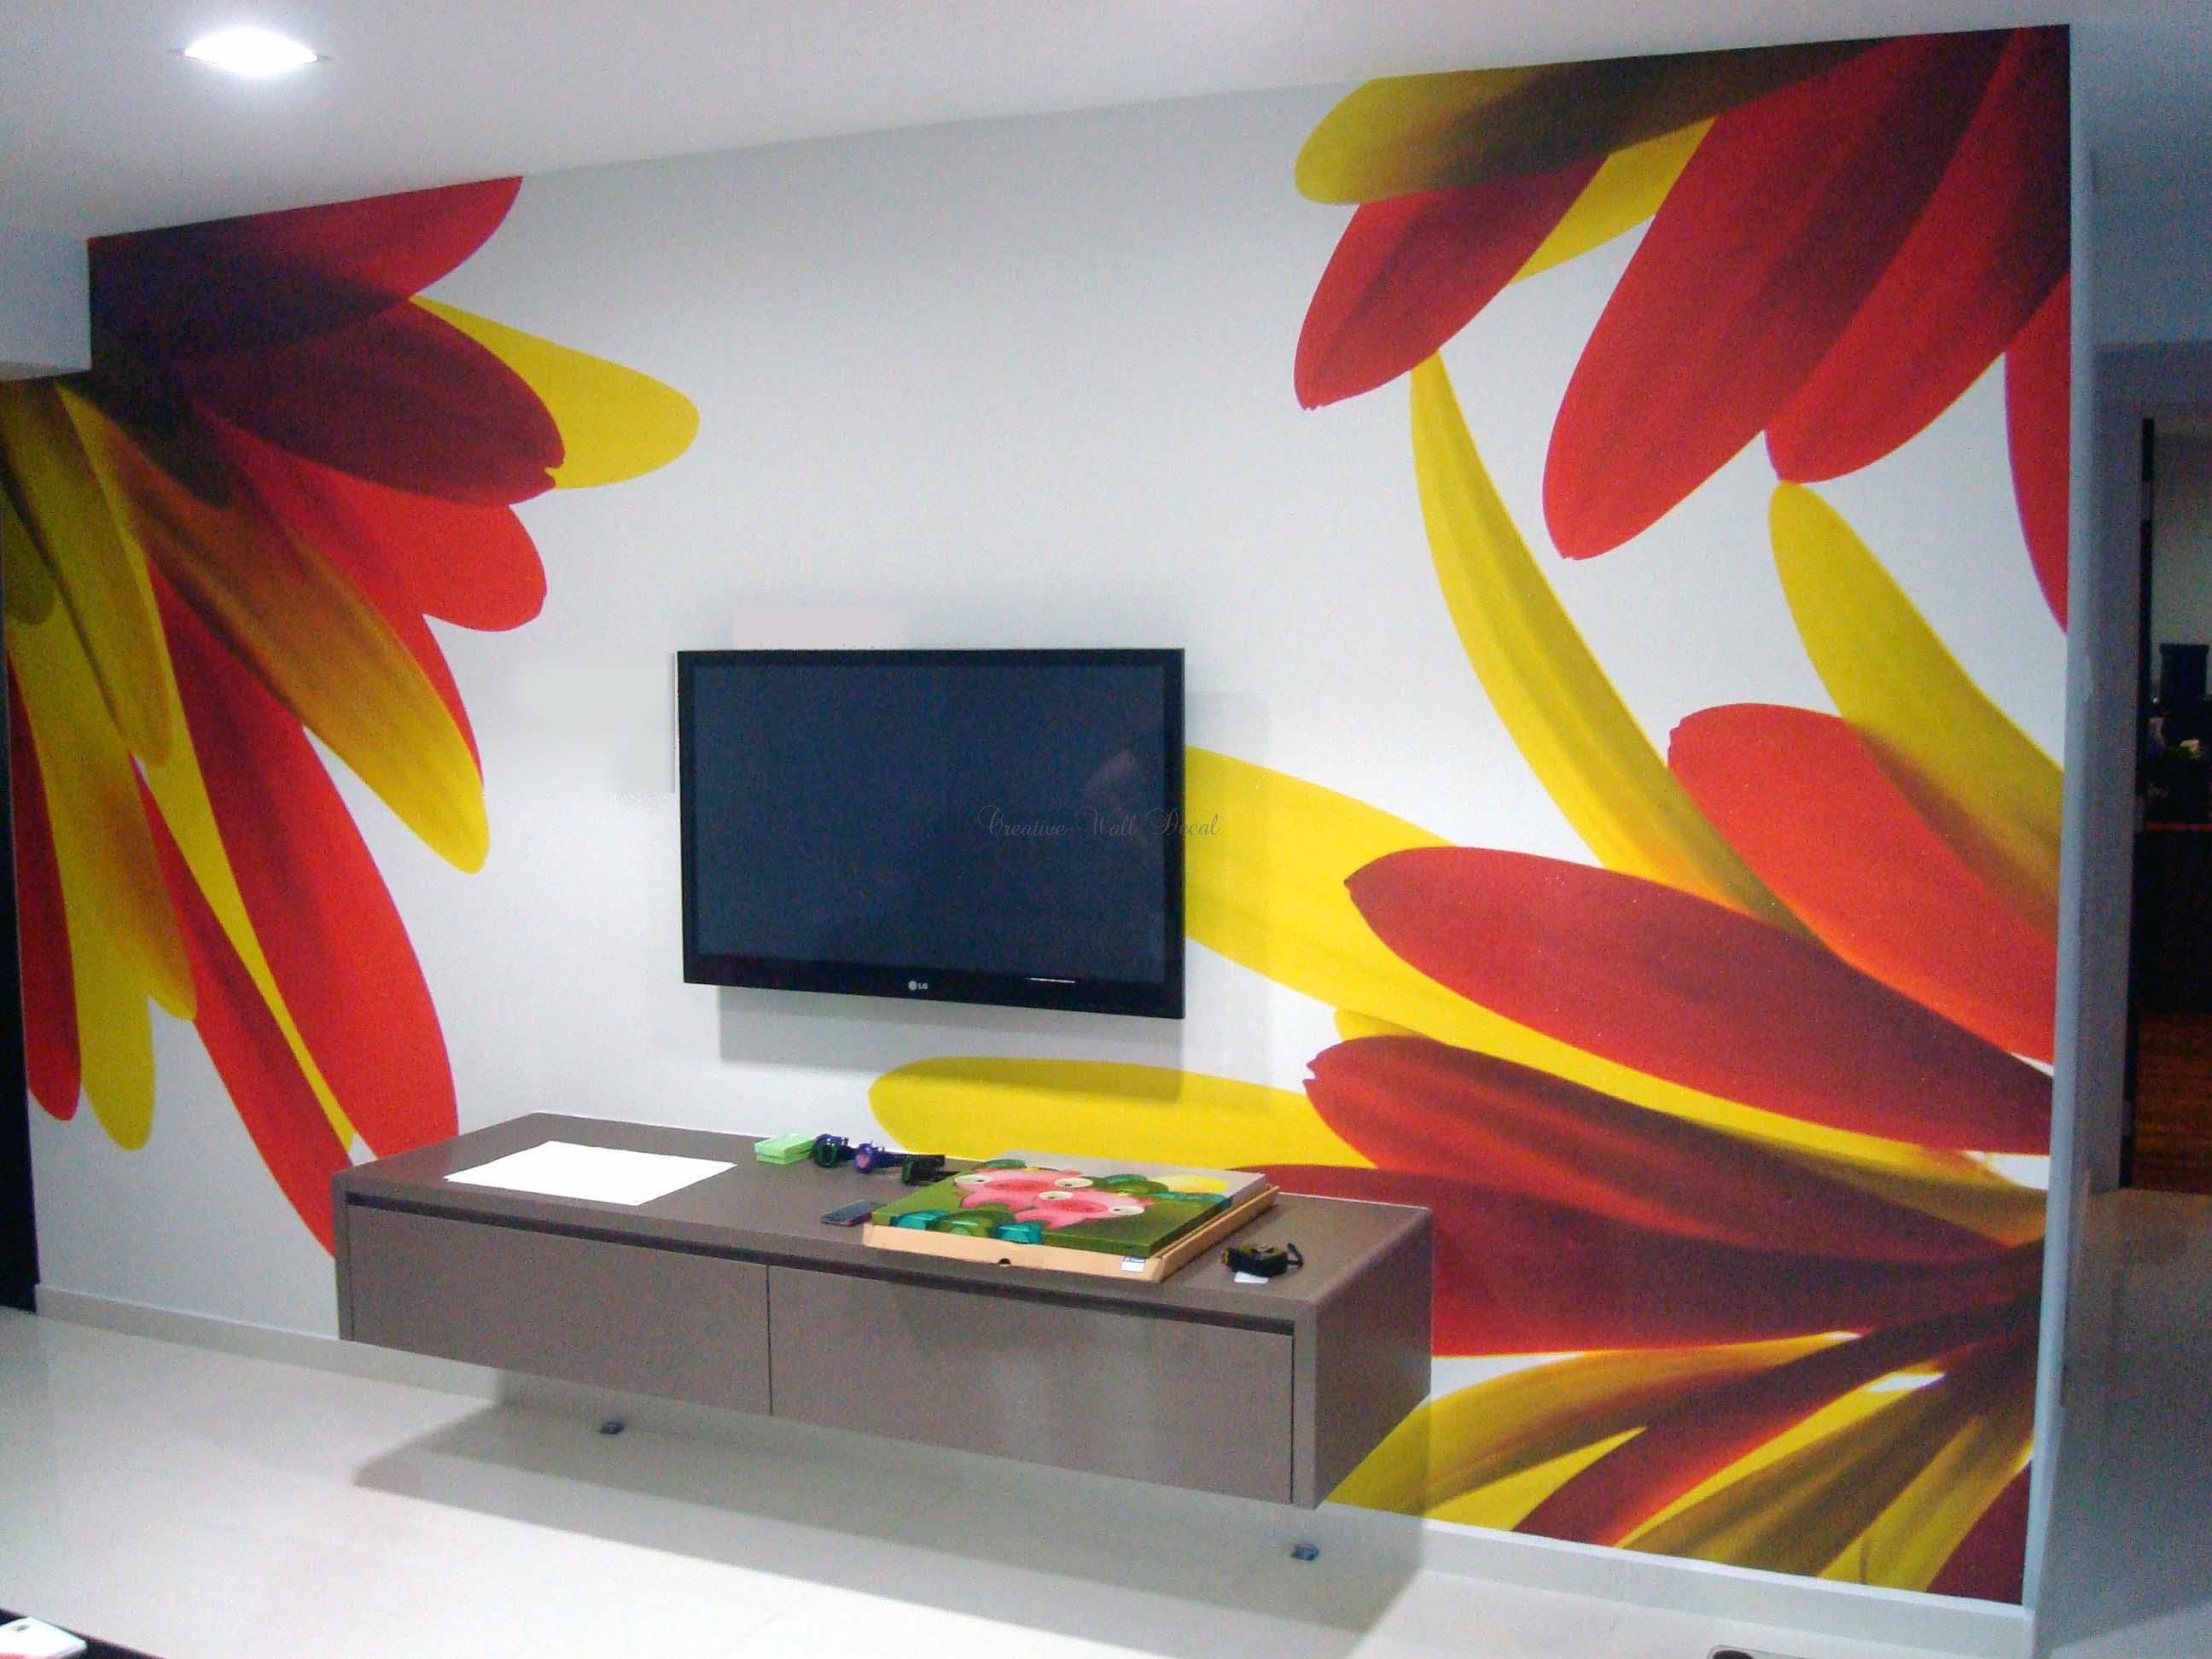 20 well favoured wall painting ideas for ideas and inspiration i would do the flowers on - Interior Wall Painting Designs